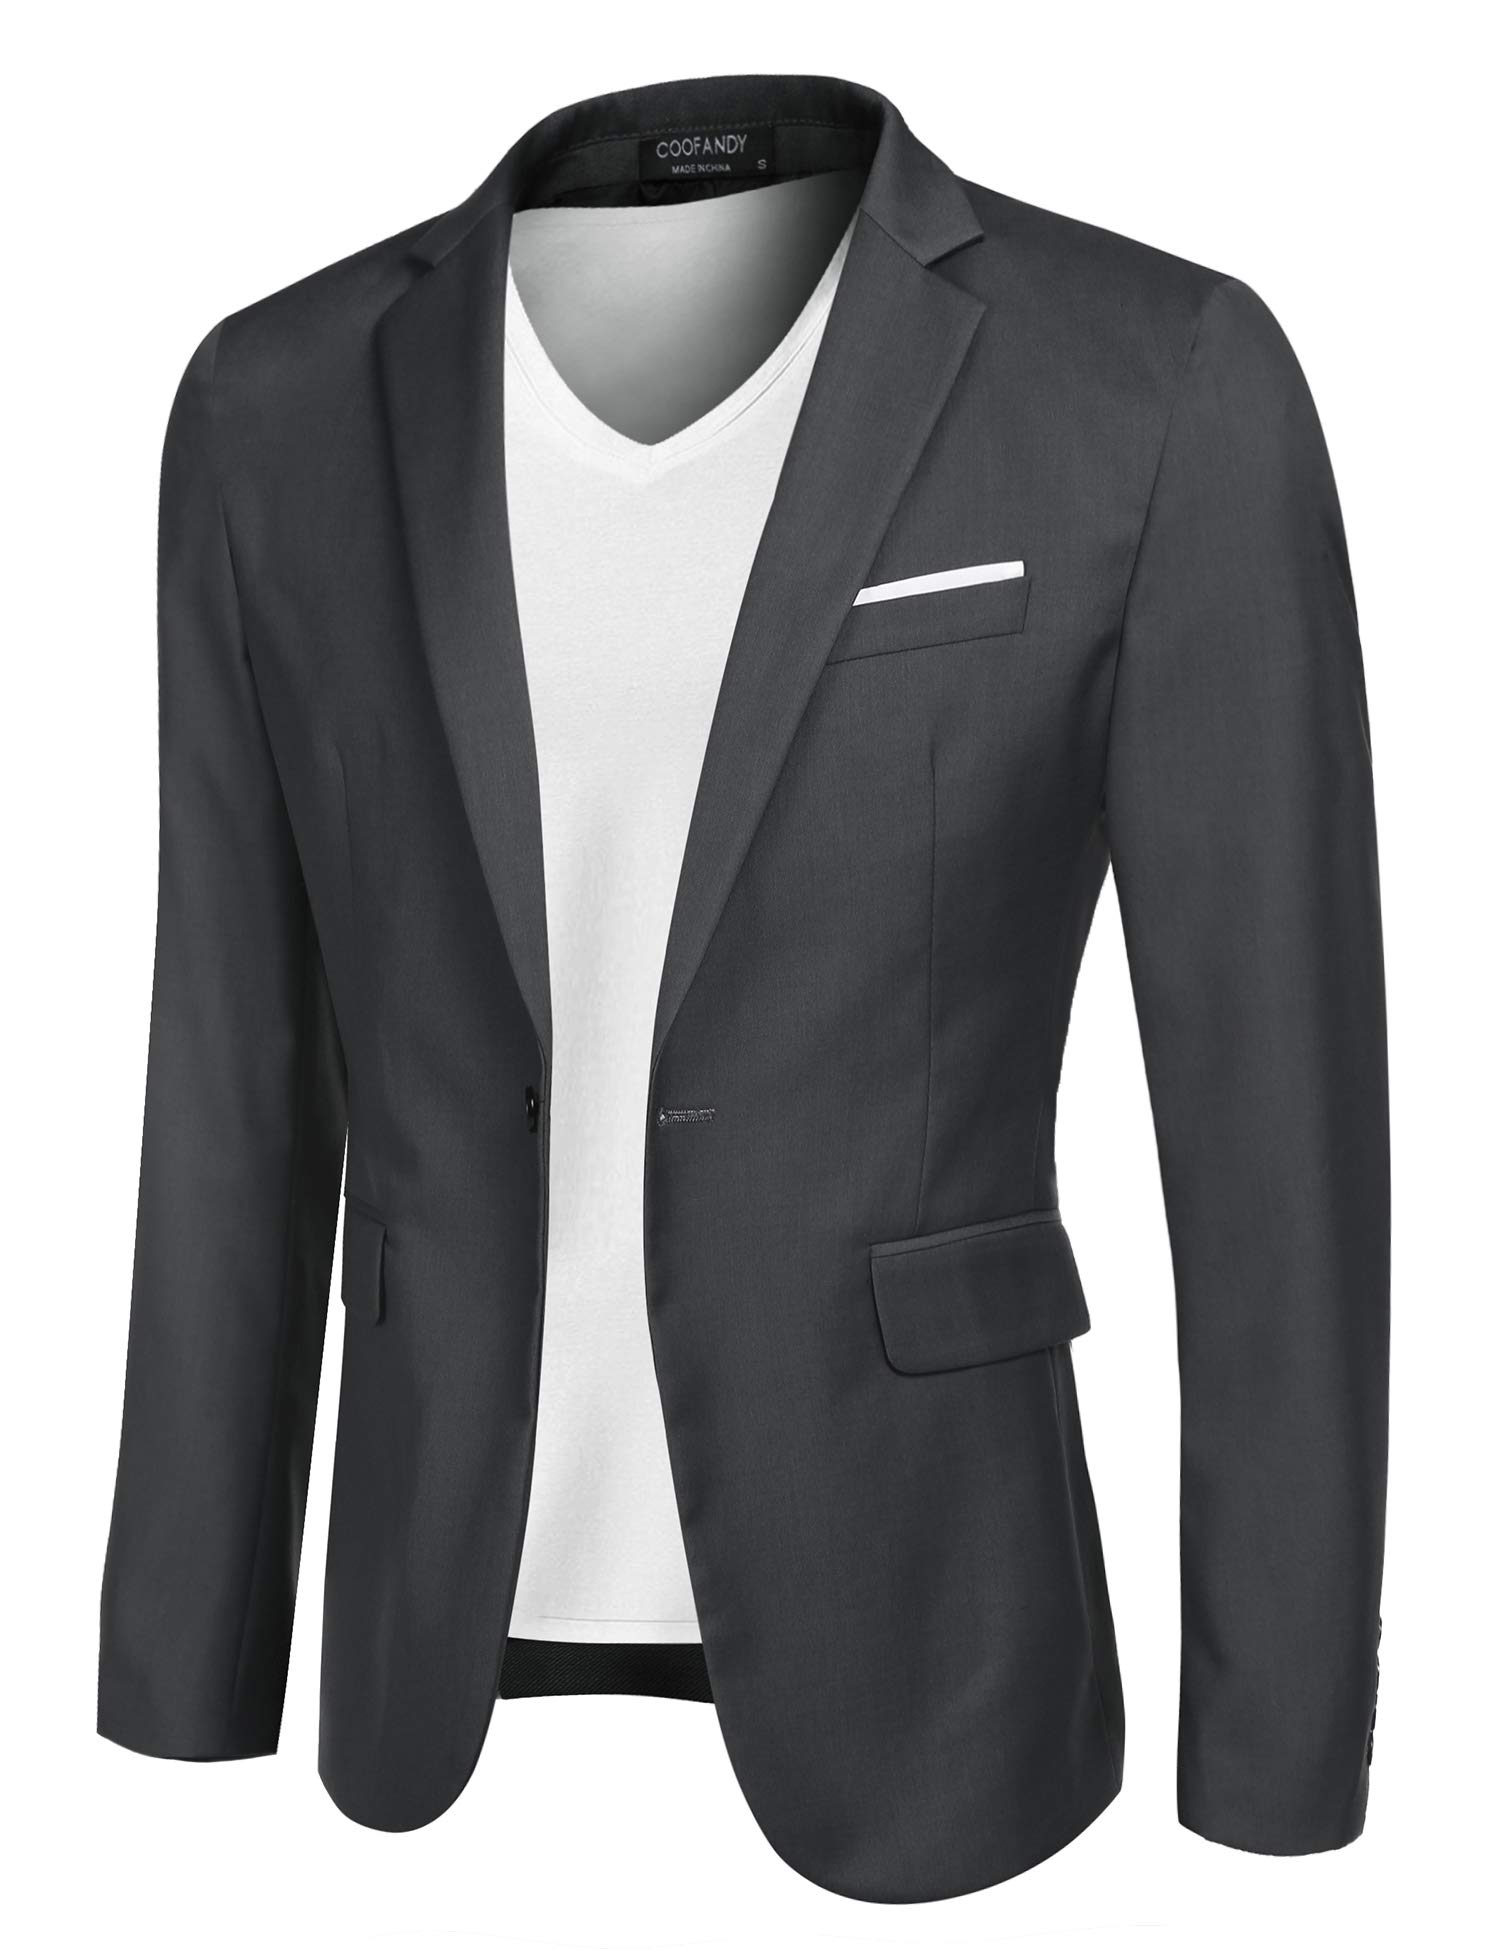 X-Future Mens Slim Big /& Tall Business 1 Button Casual Blazer Jacket Sport Coat